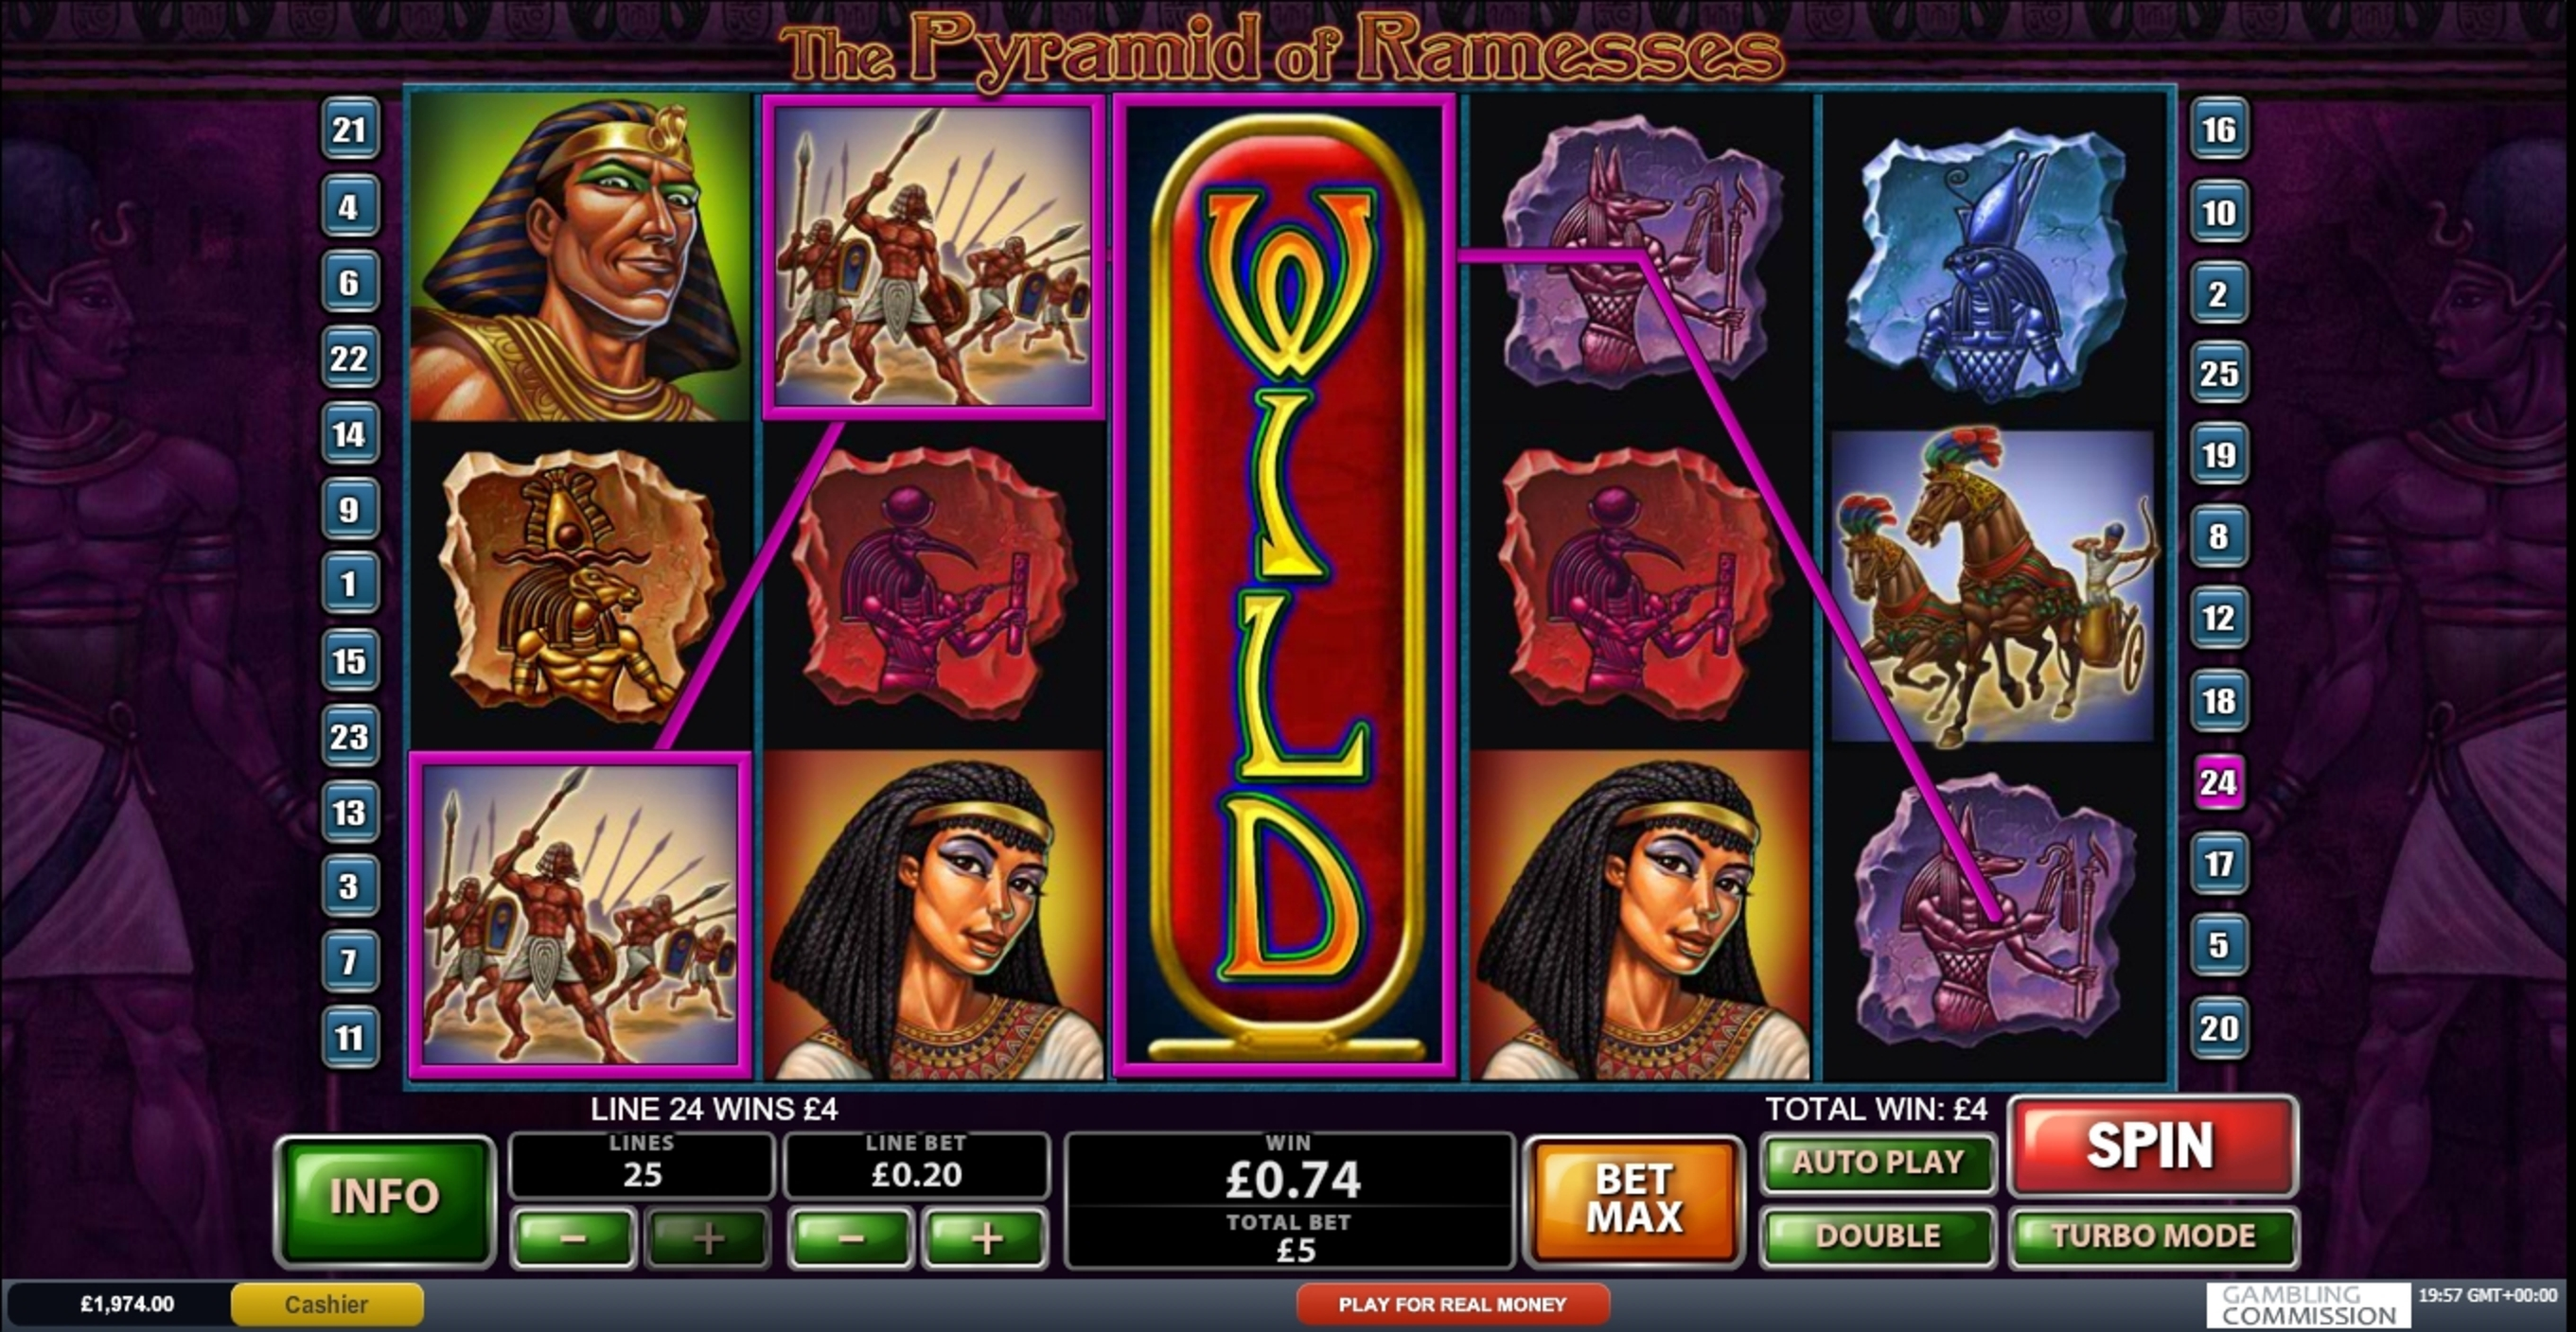 Win Money in The Pyramid of Ramesses (Playtech) Free Slot Game by Playtech